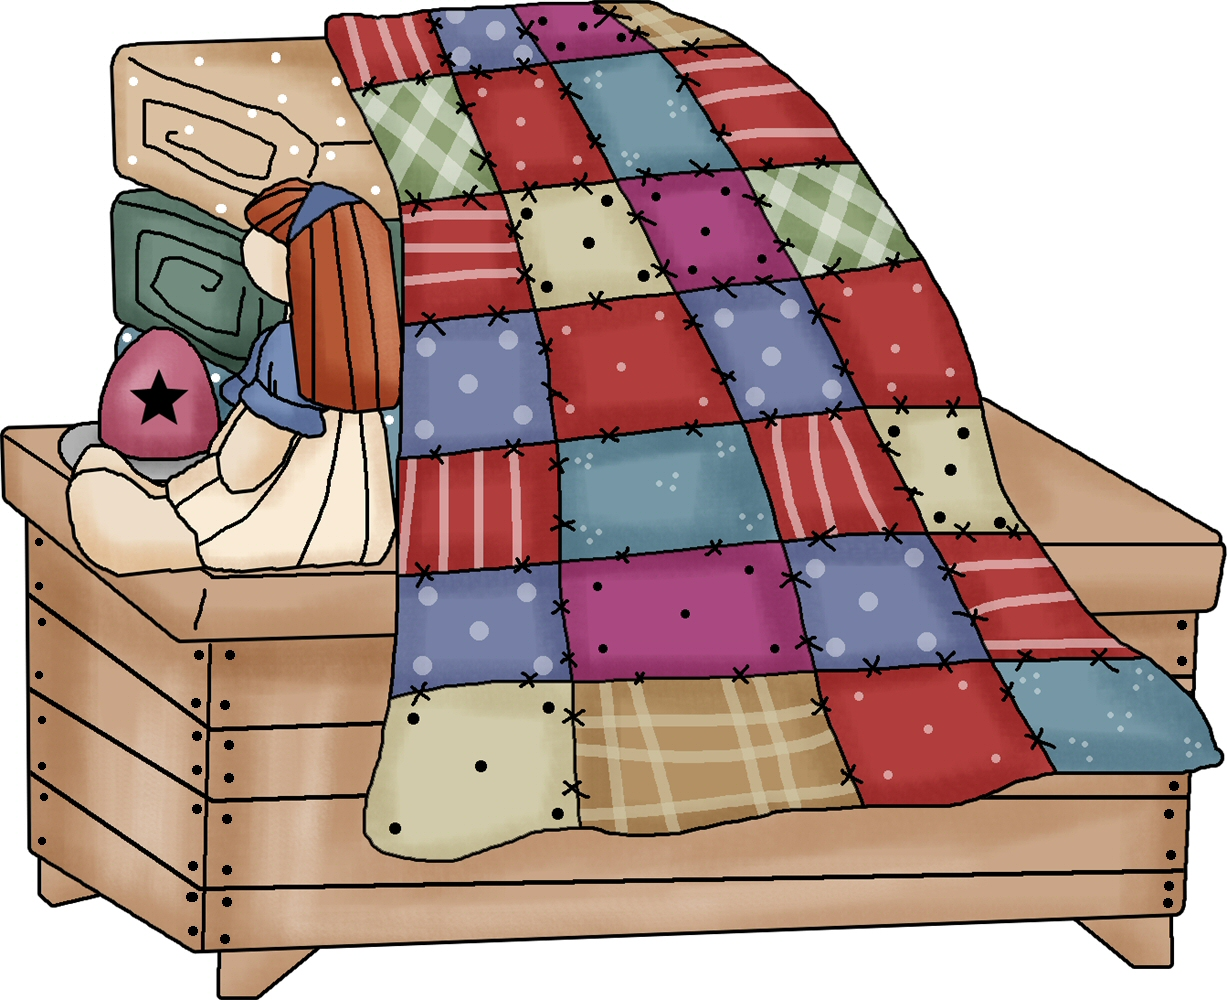 Free cliparts download clip. Quilt clipart quilting sewing